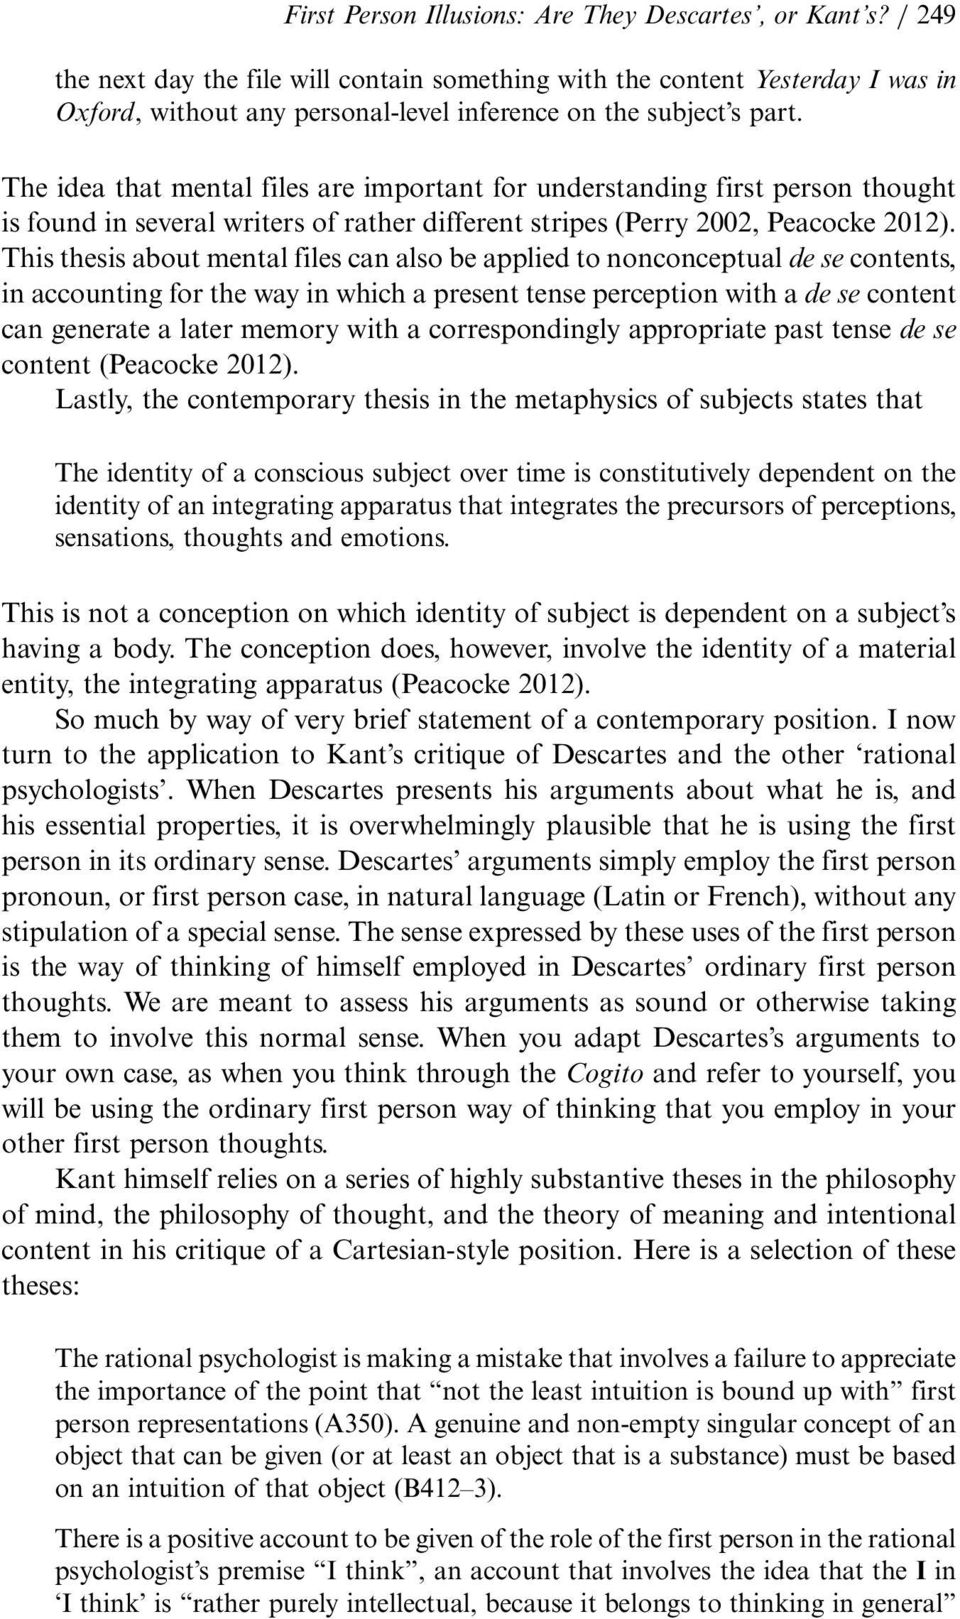 The idea that mental files are important for understanding first person thought is found in several writers of rather different stripes (Perry 2002, Peacocke 2012).